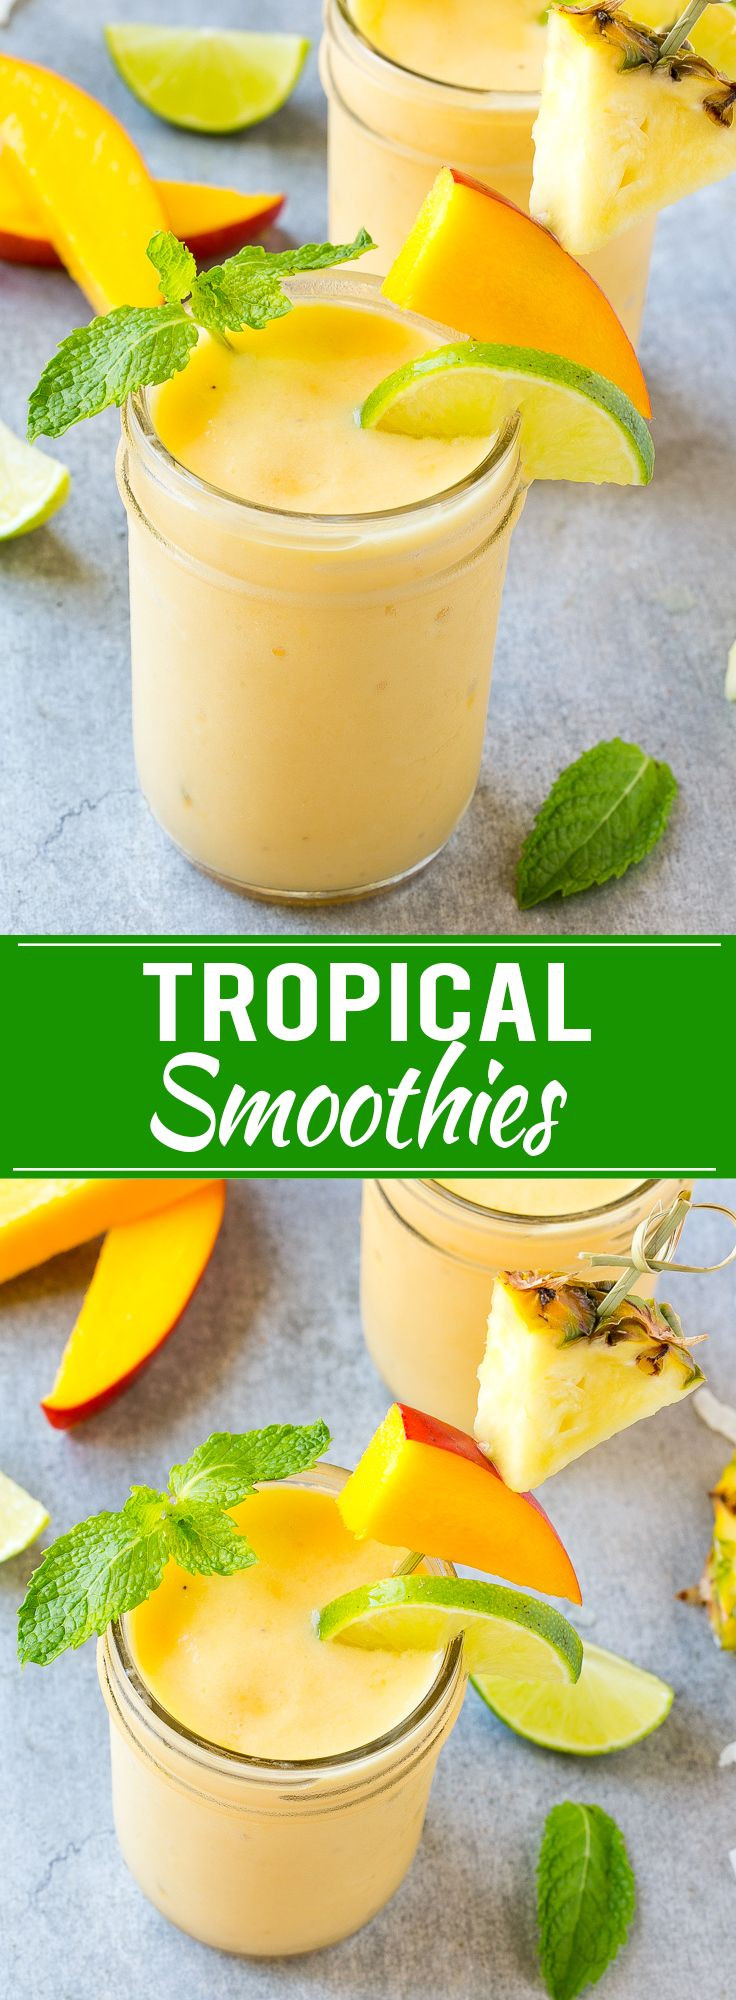 Easy Healthy Smoothie Recipes  Best 25 Tropical smoothie recipes ideas on Pinterest